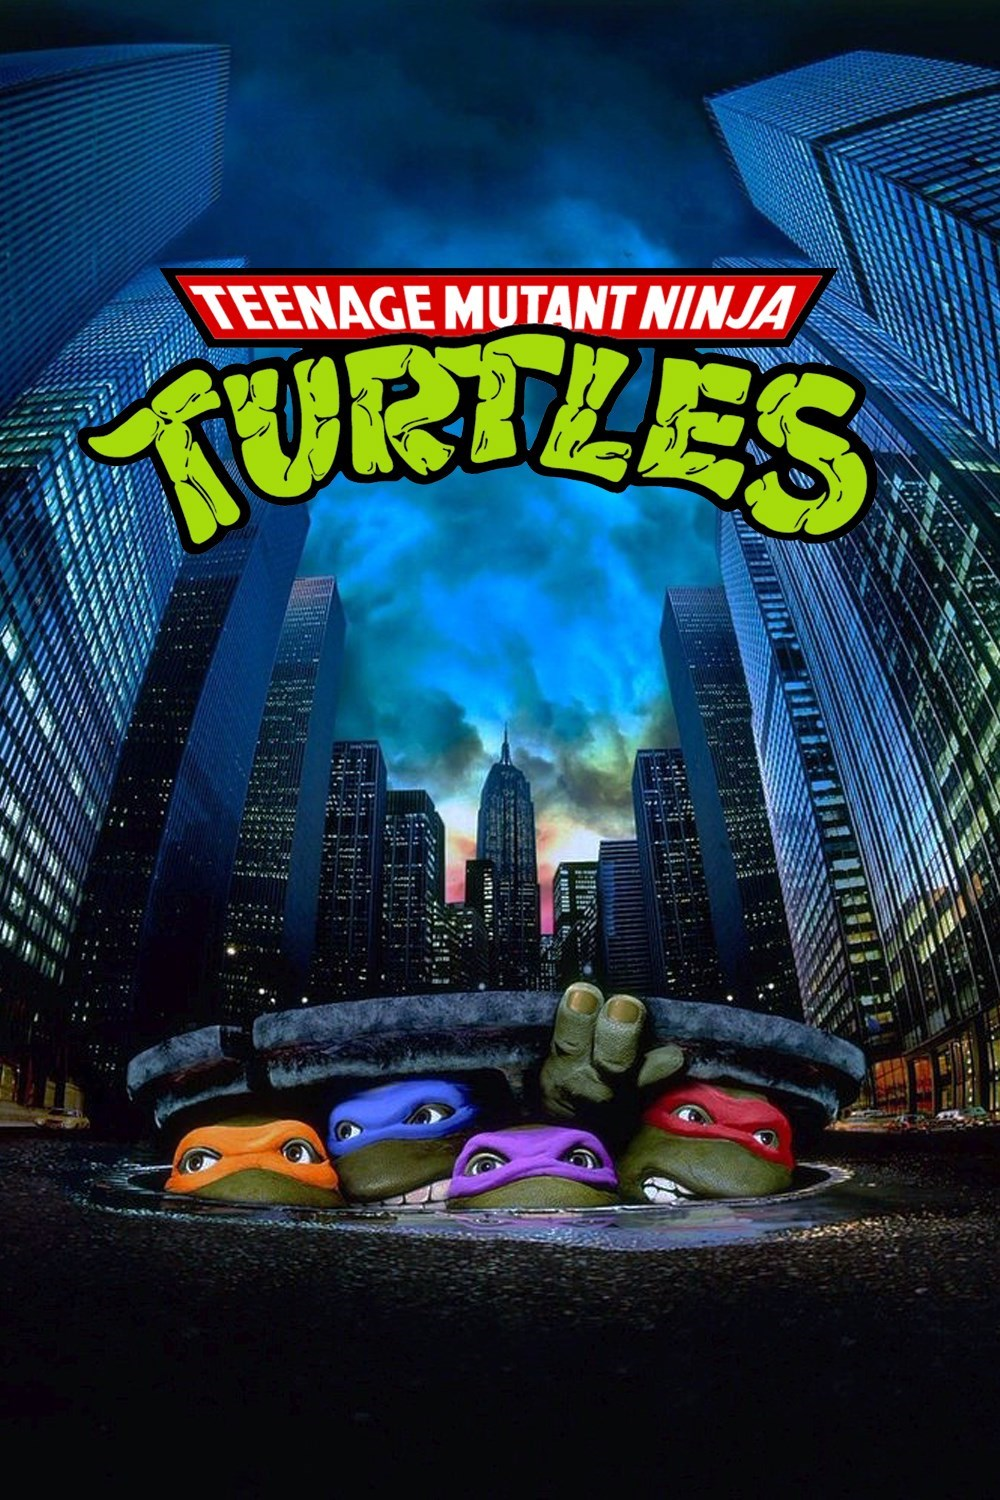 Teenage Mutant Ninja Turtles 2014 Movie Review TMNT Original 1990